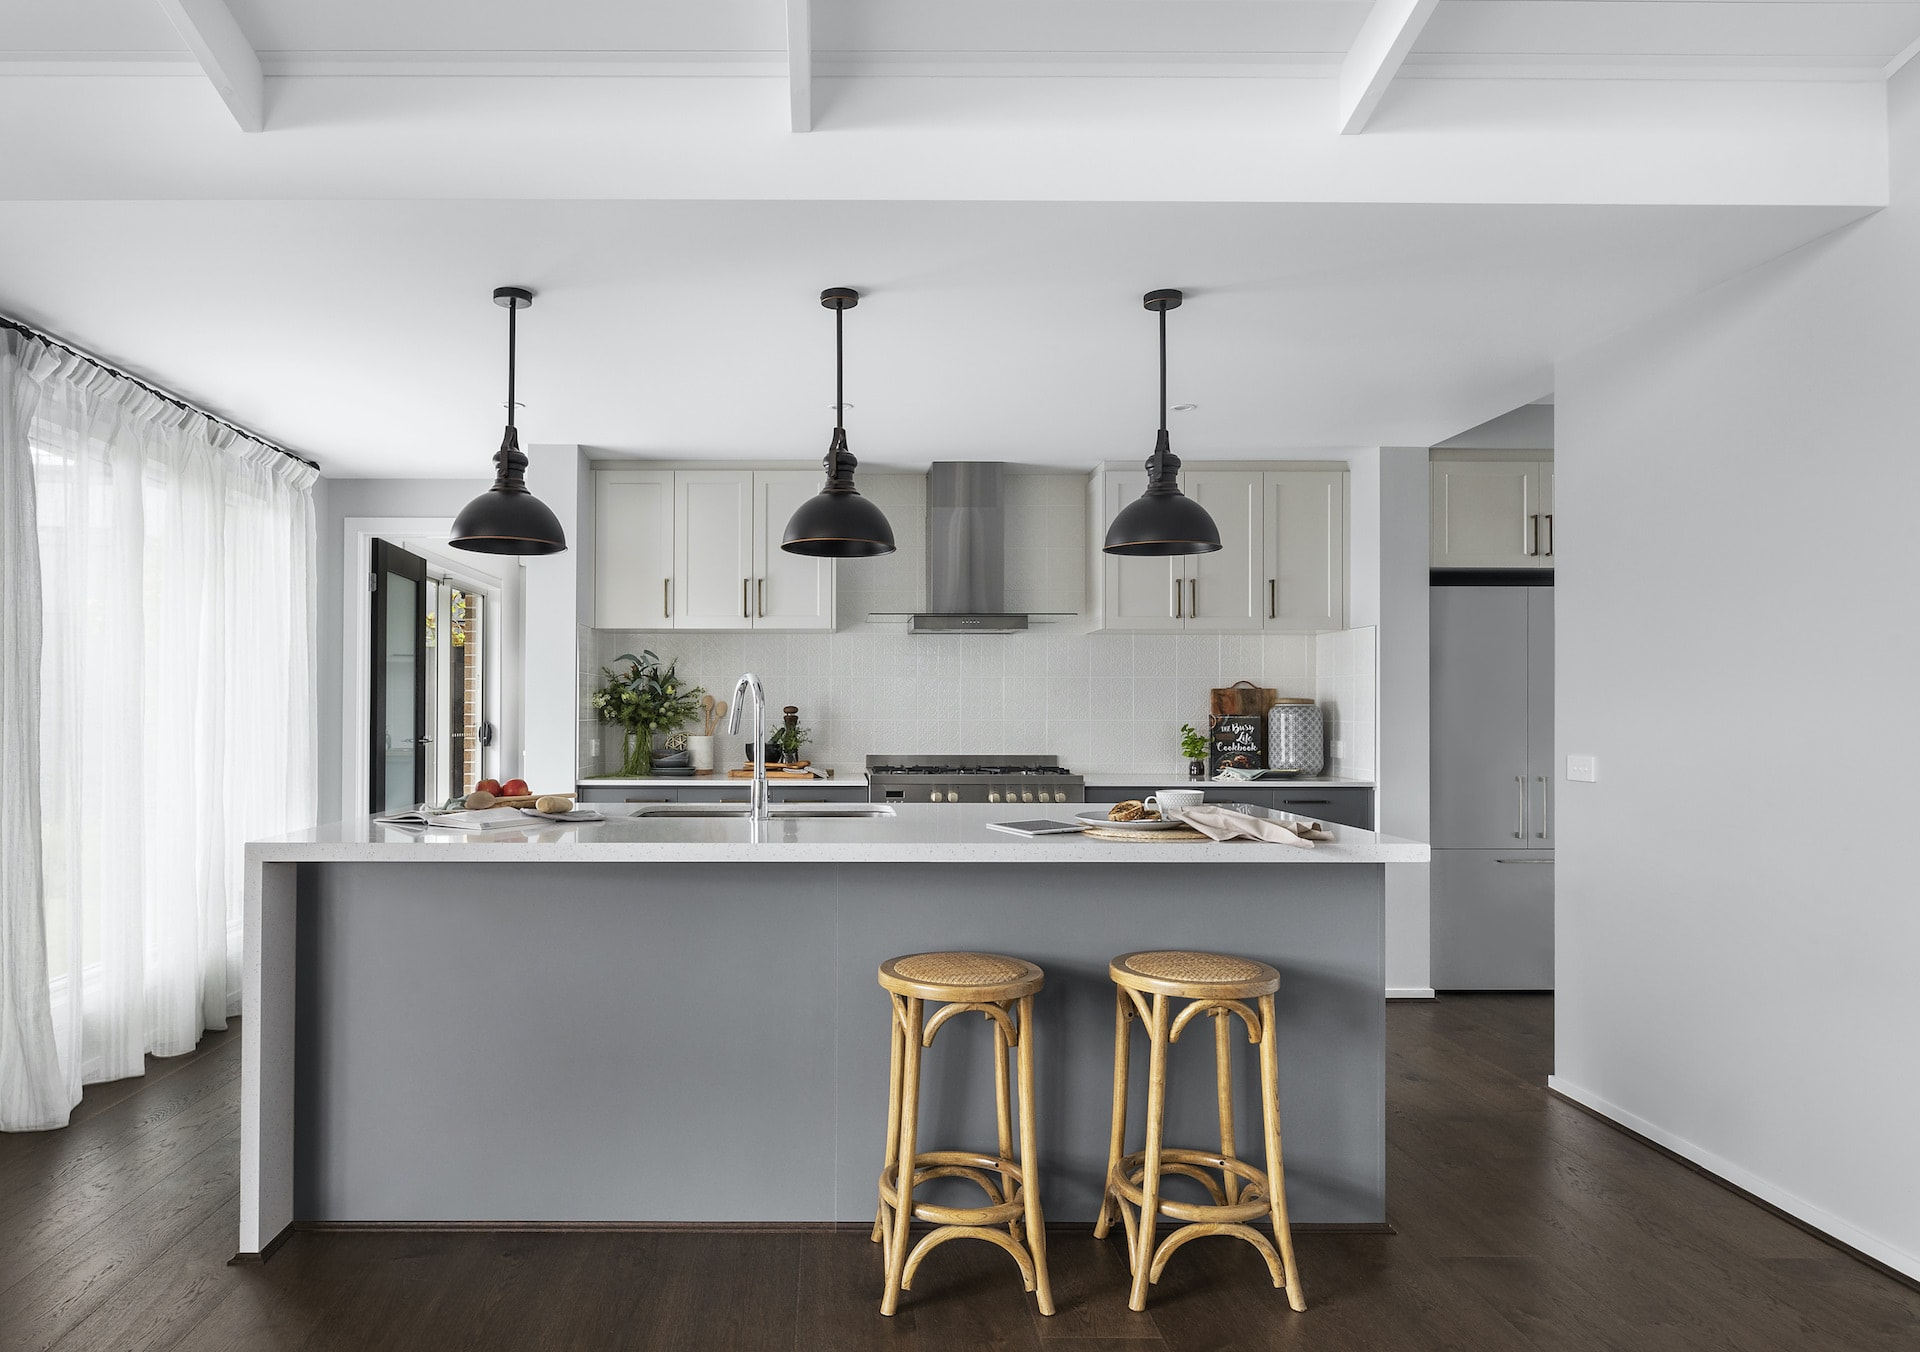 modern country kitchen with black industrial pendant lights over kitchen island